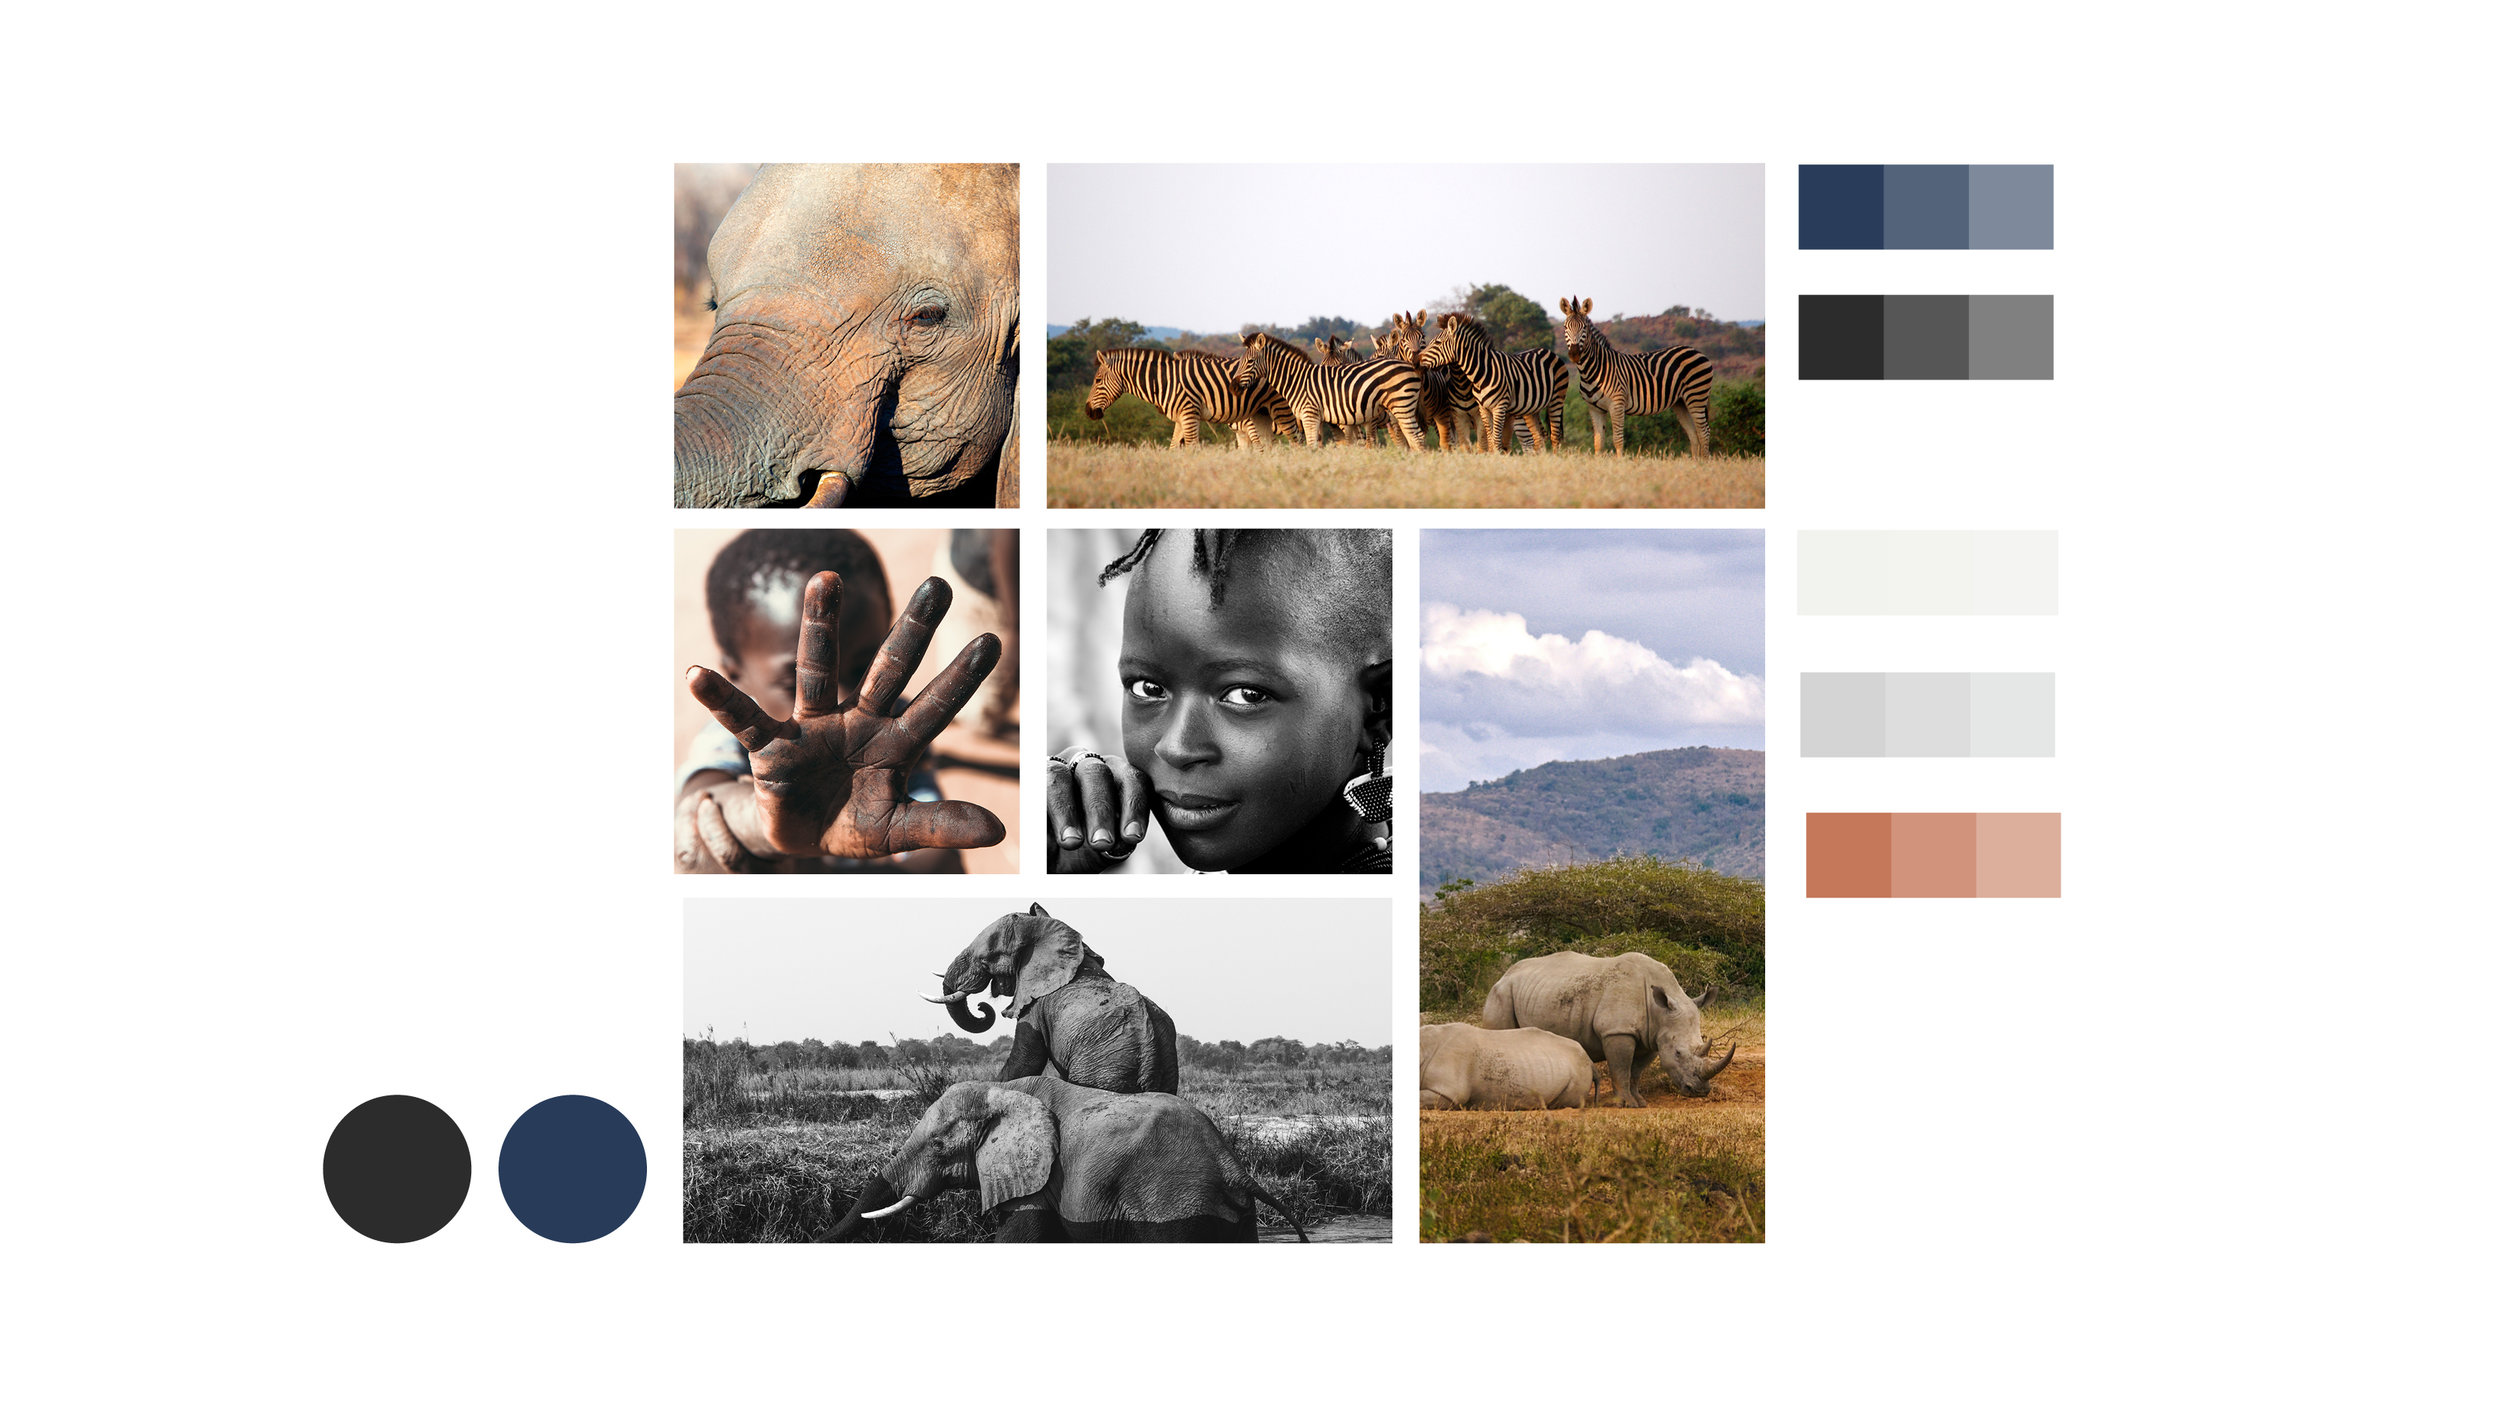 Roam Africa Adventures is owned and operated in Tanzania. Stephanie Wencl created a squarespace site for the start-up business to promote the travel expeditions, to outreach though social media, and to complete online bookings.